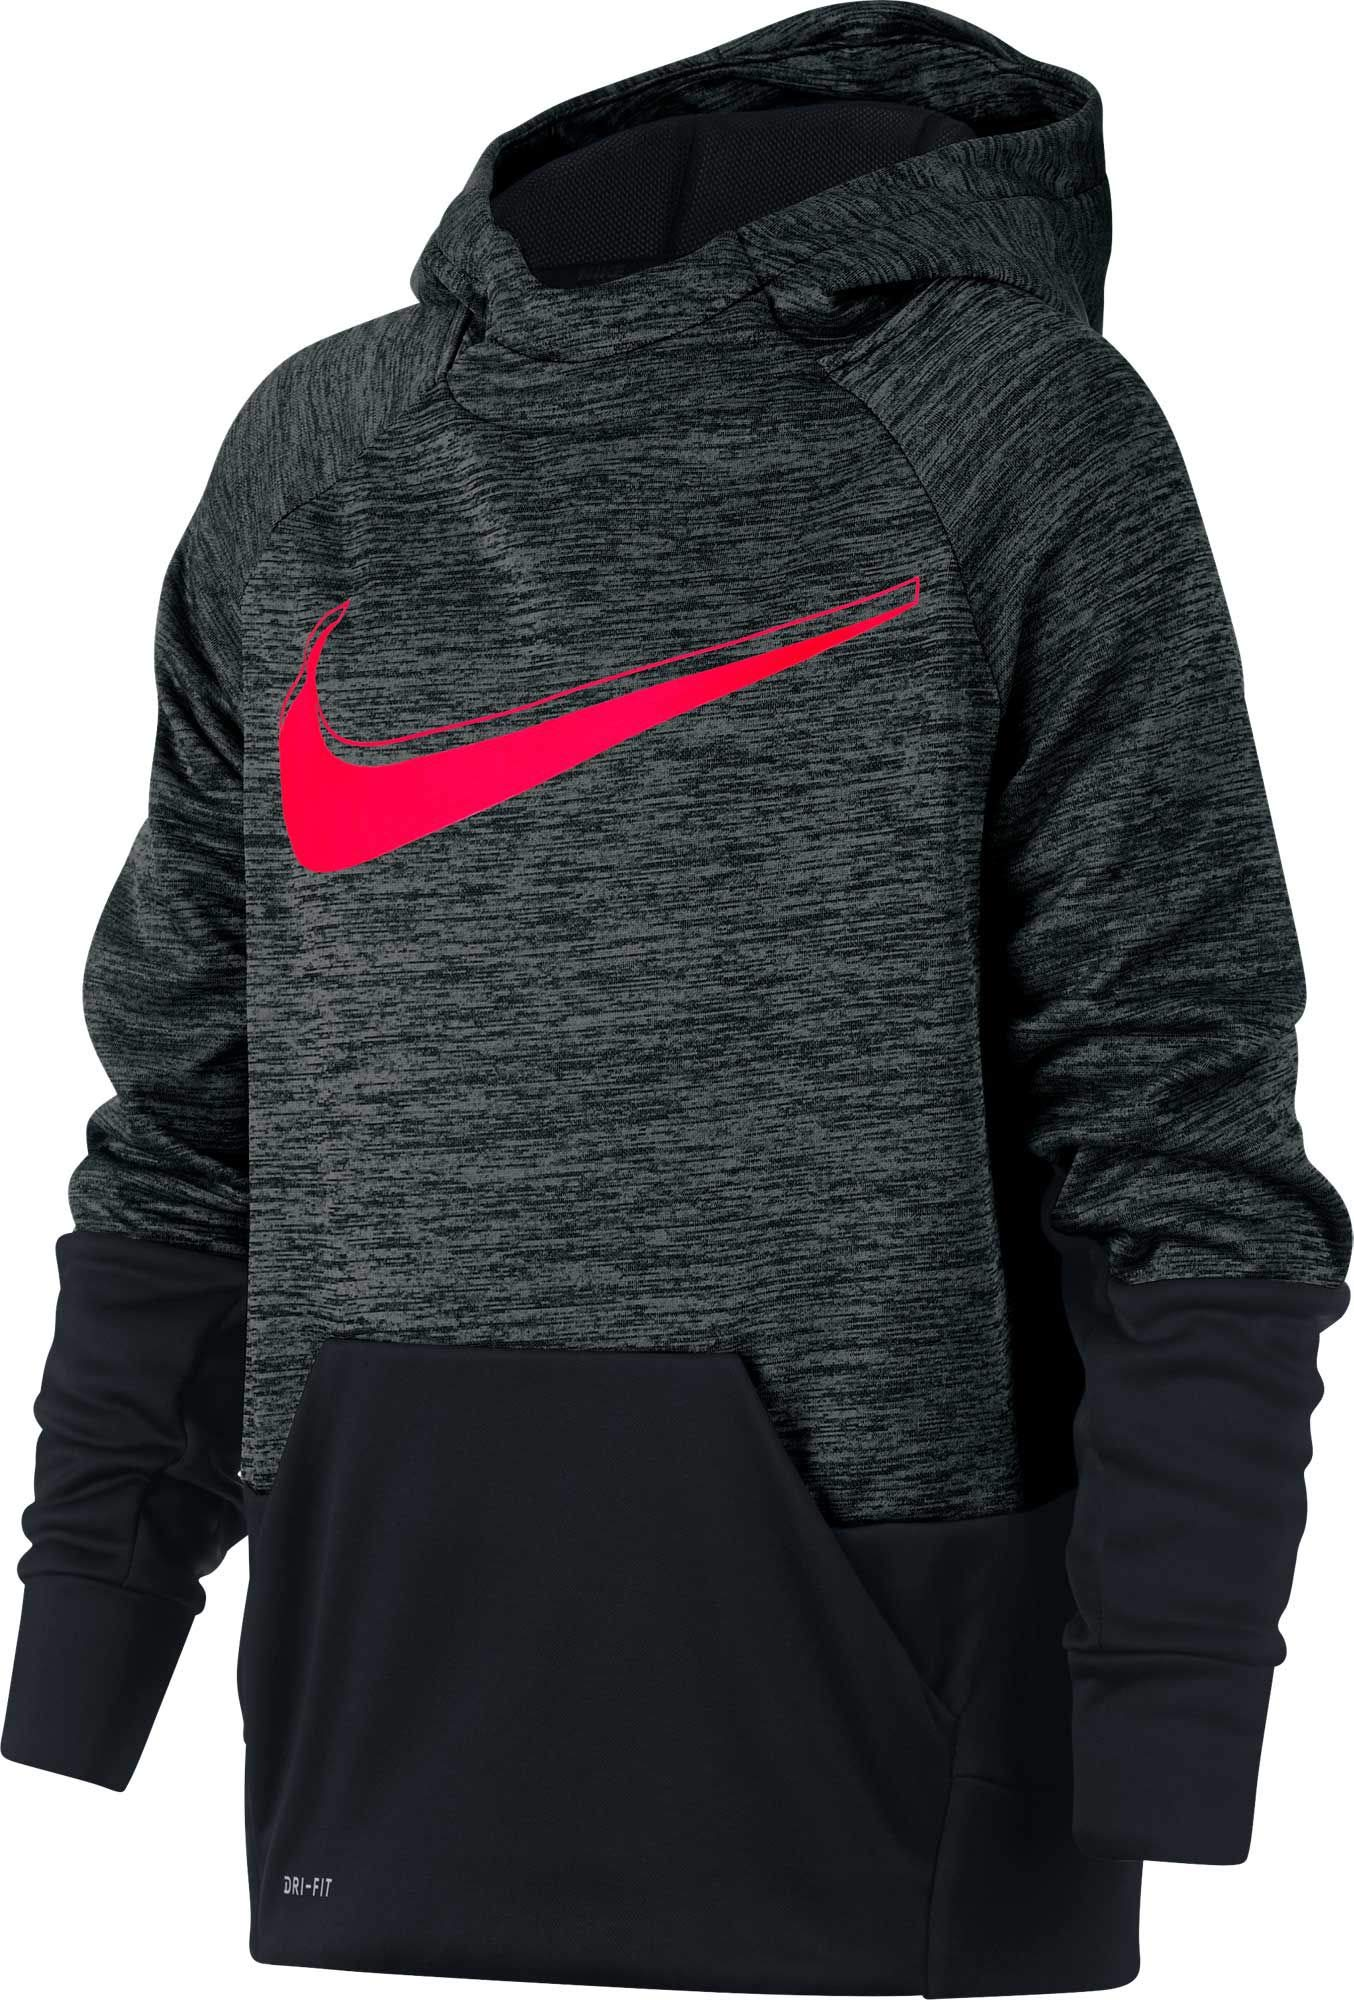 NIKE Boy's Therma Heathered Graphic Hoodie (Black/Crimson, X-Small)